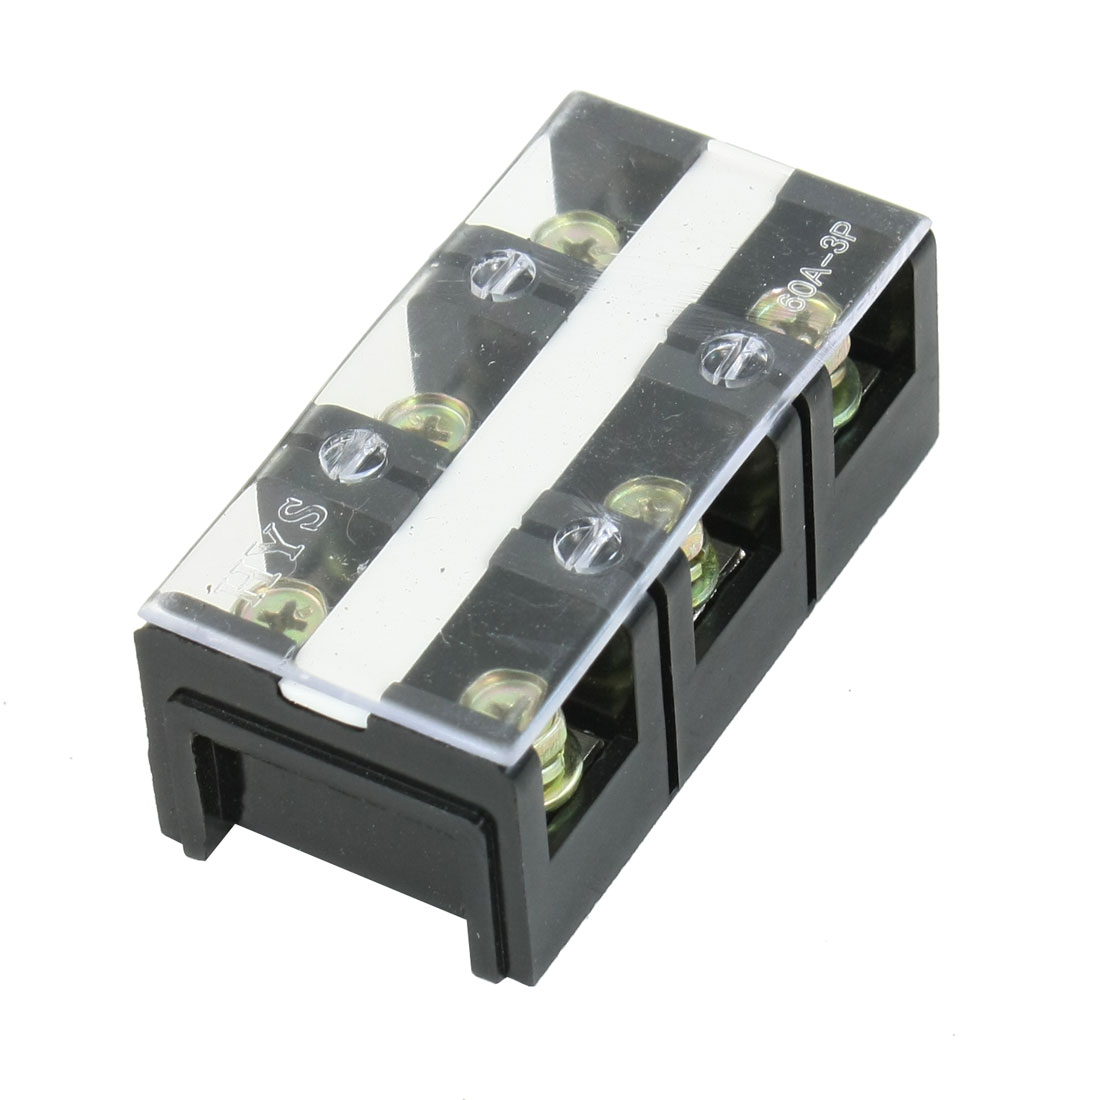 600V 60A Dual Row 3 Position 3P Barrier Screw Terminal Block